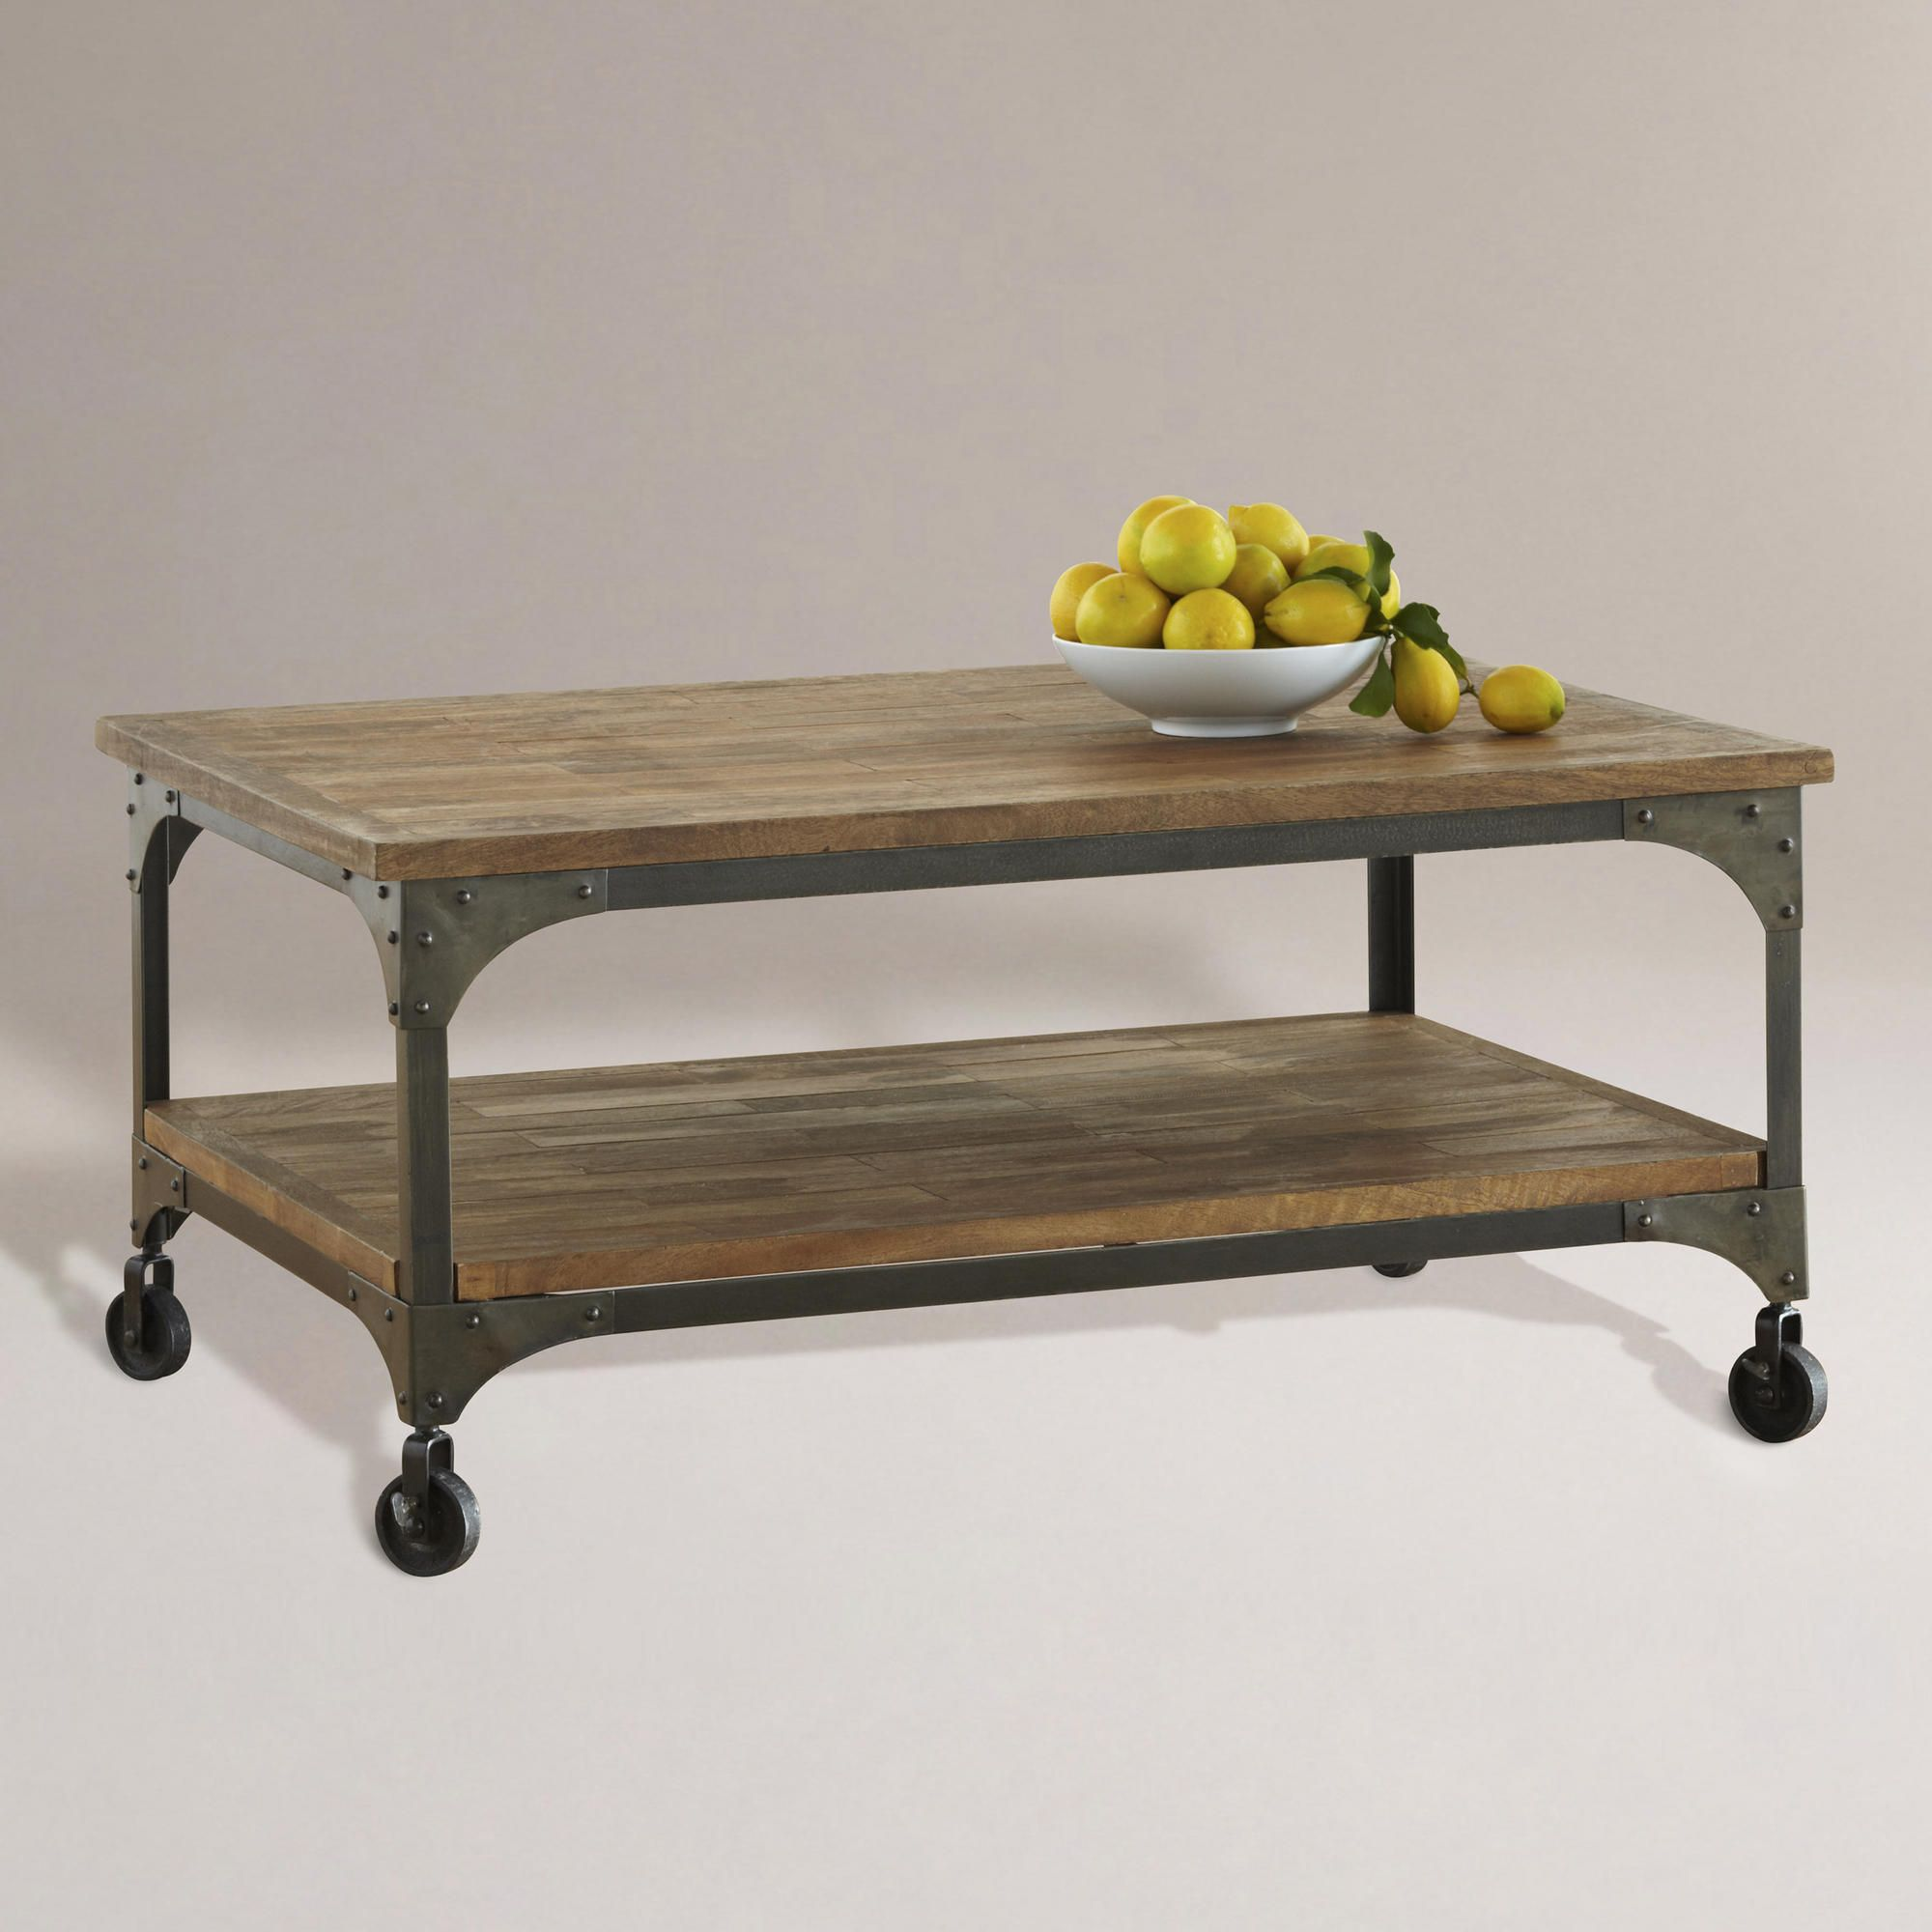 aiden coffee table | industrial, furniture and world